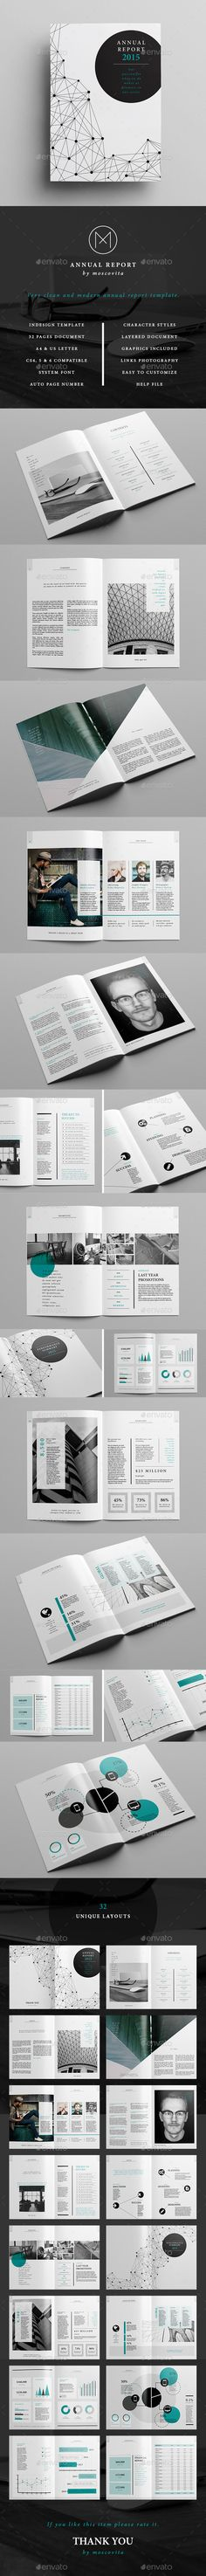 The Annual Report Template is perfect for the publication of a complete and professional annual report. It's divided into a first part with photos and narrative to provide all the interesting information about the company and a second part, contains the financial details with graphics for a visual result.